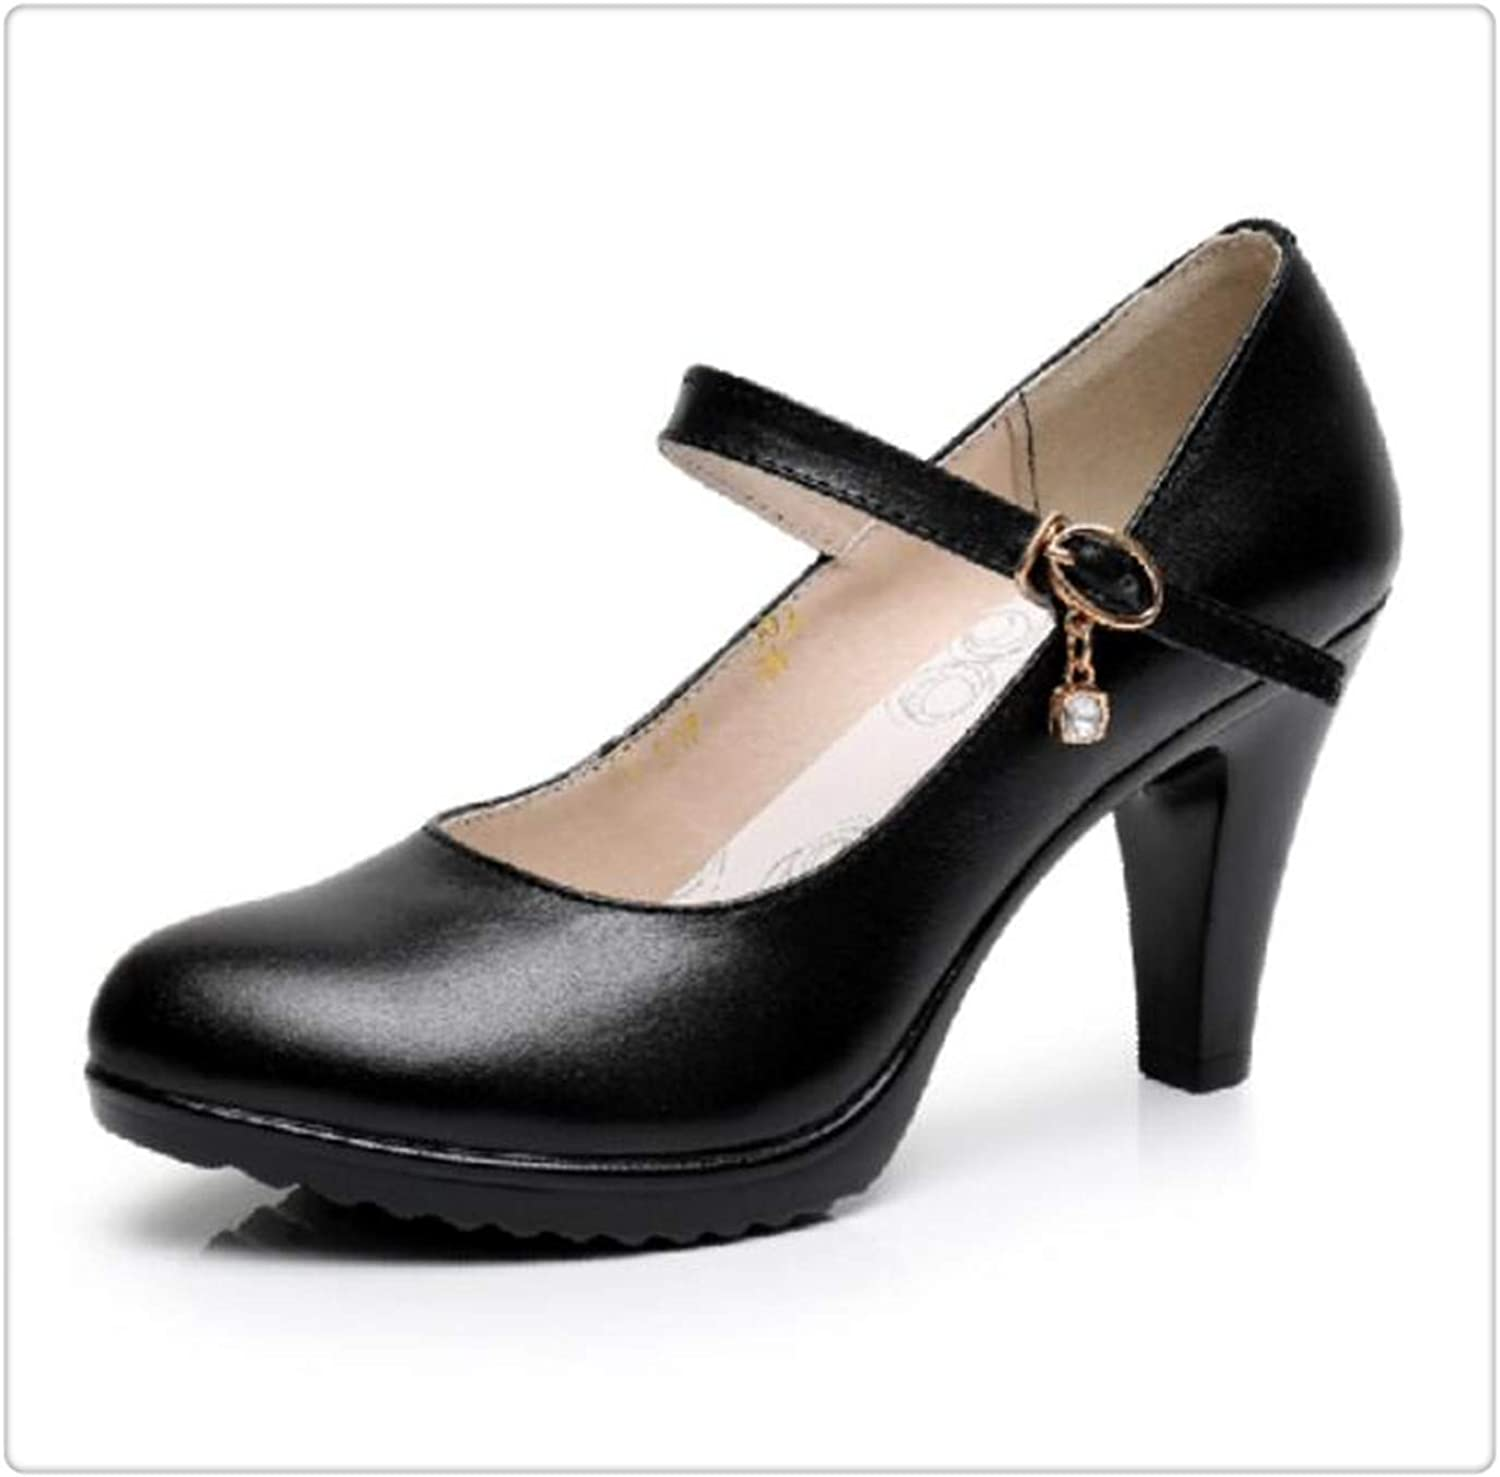 Yyixianma Genuine Leather Women 's shoes Platform Sexy high Heels Round Toe Comfortable